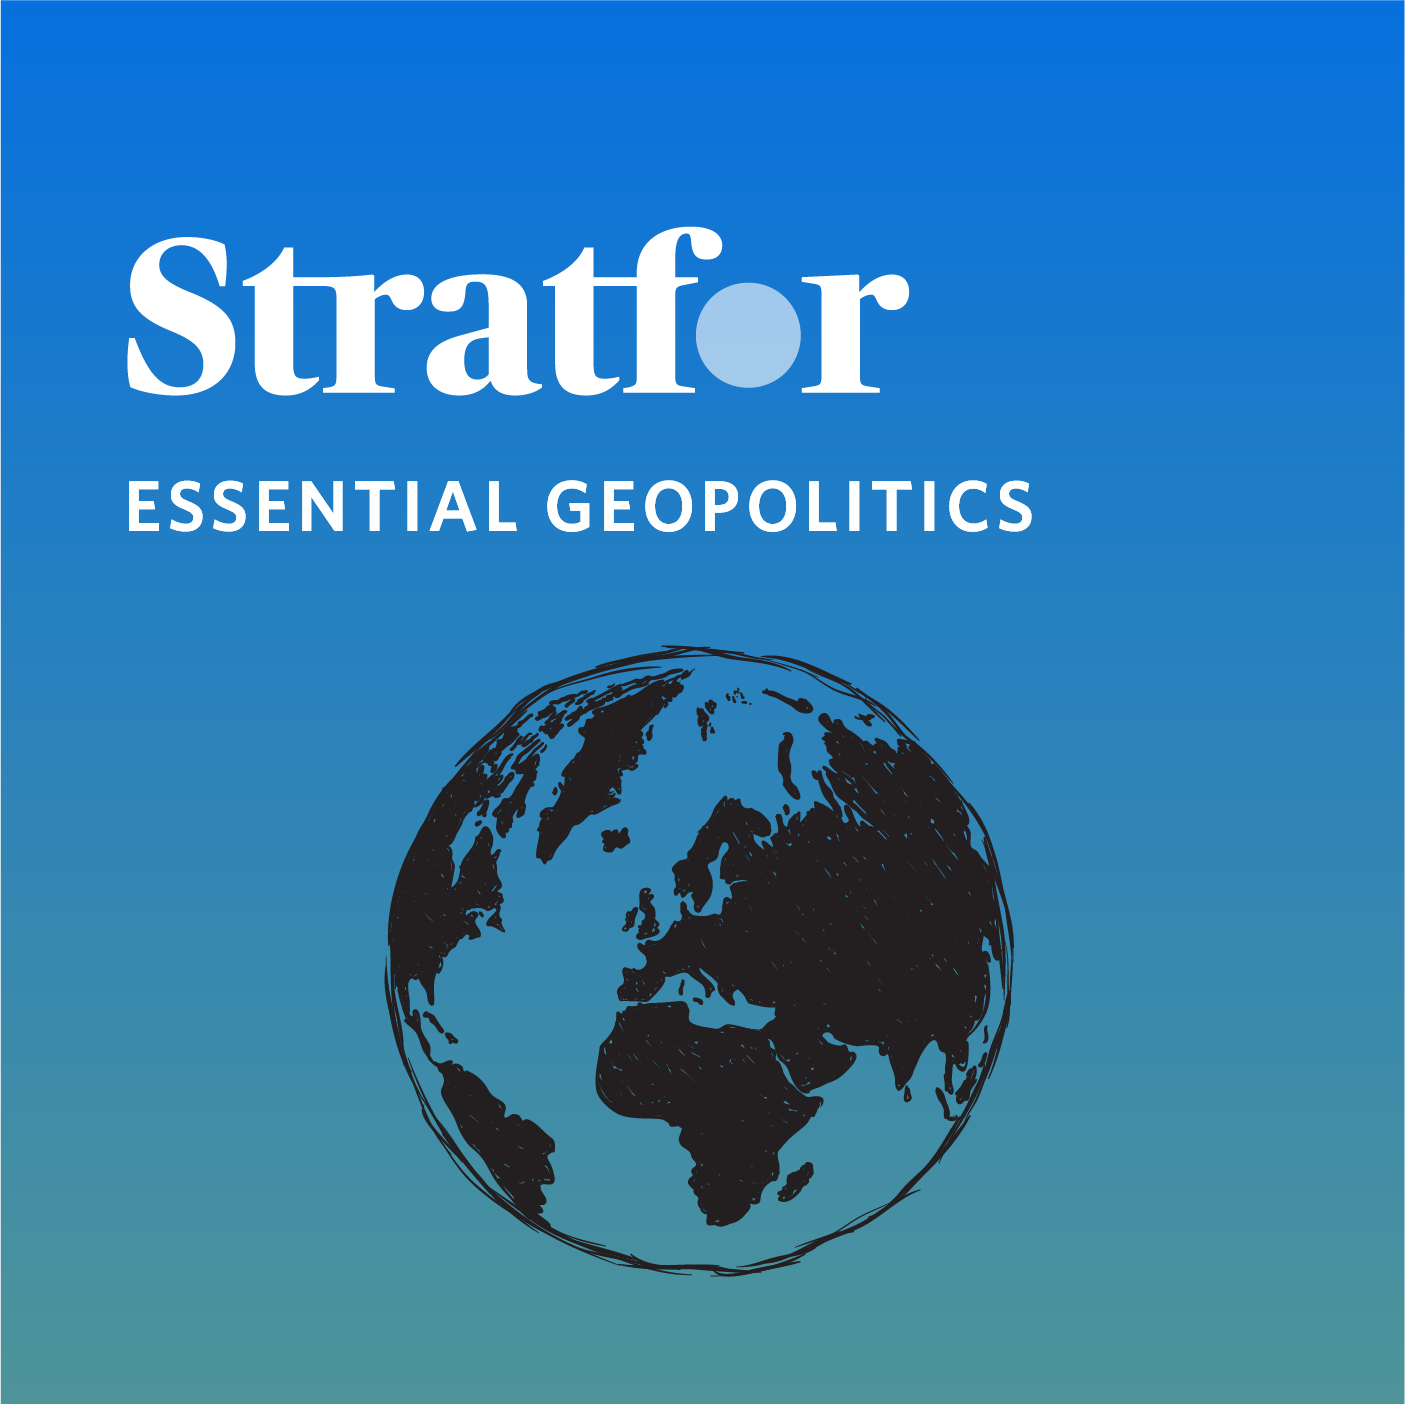 Essential Geopolitics: Two Sub-Saharan Nations Face New Leadership